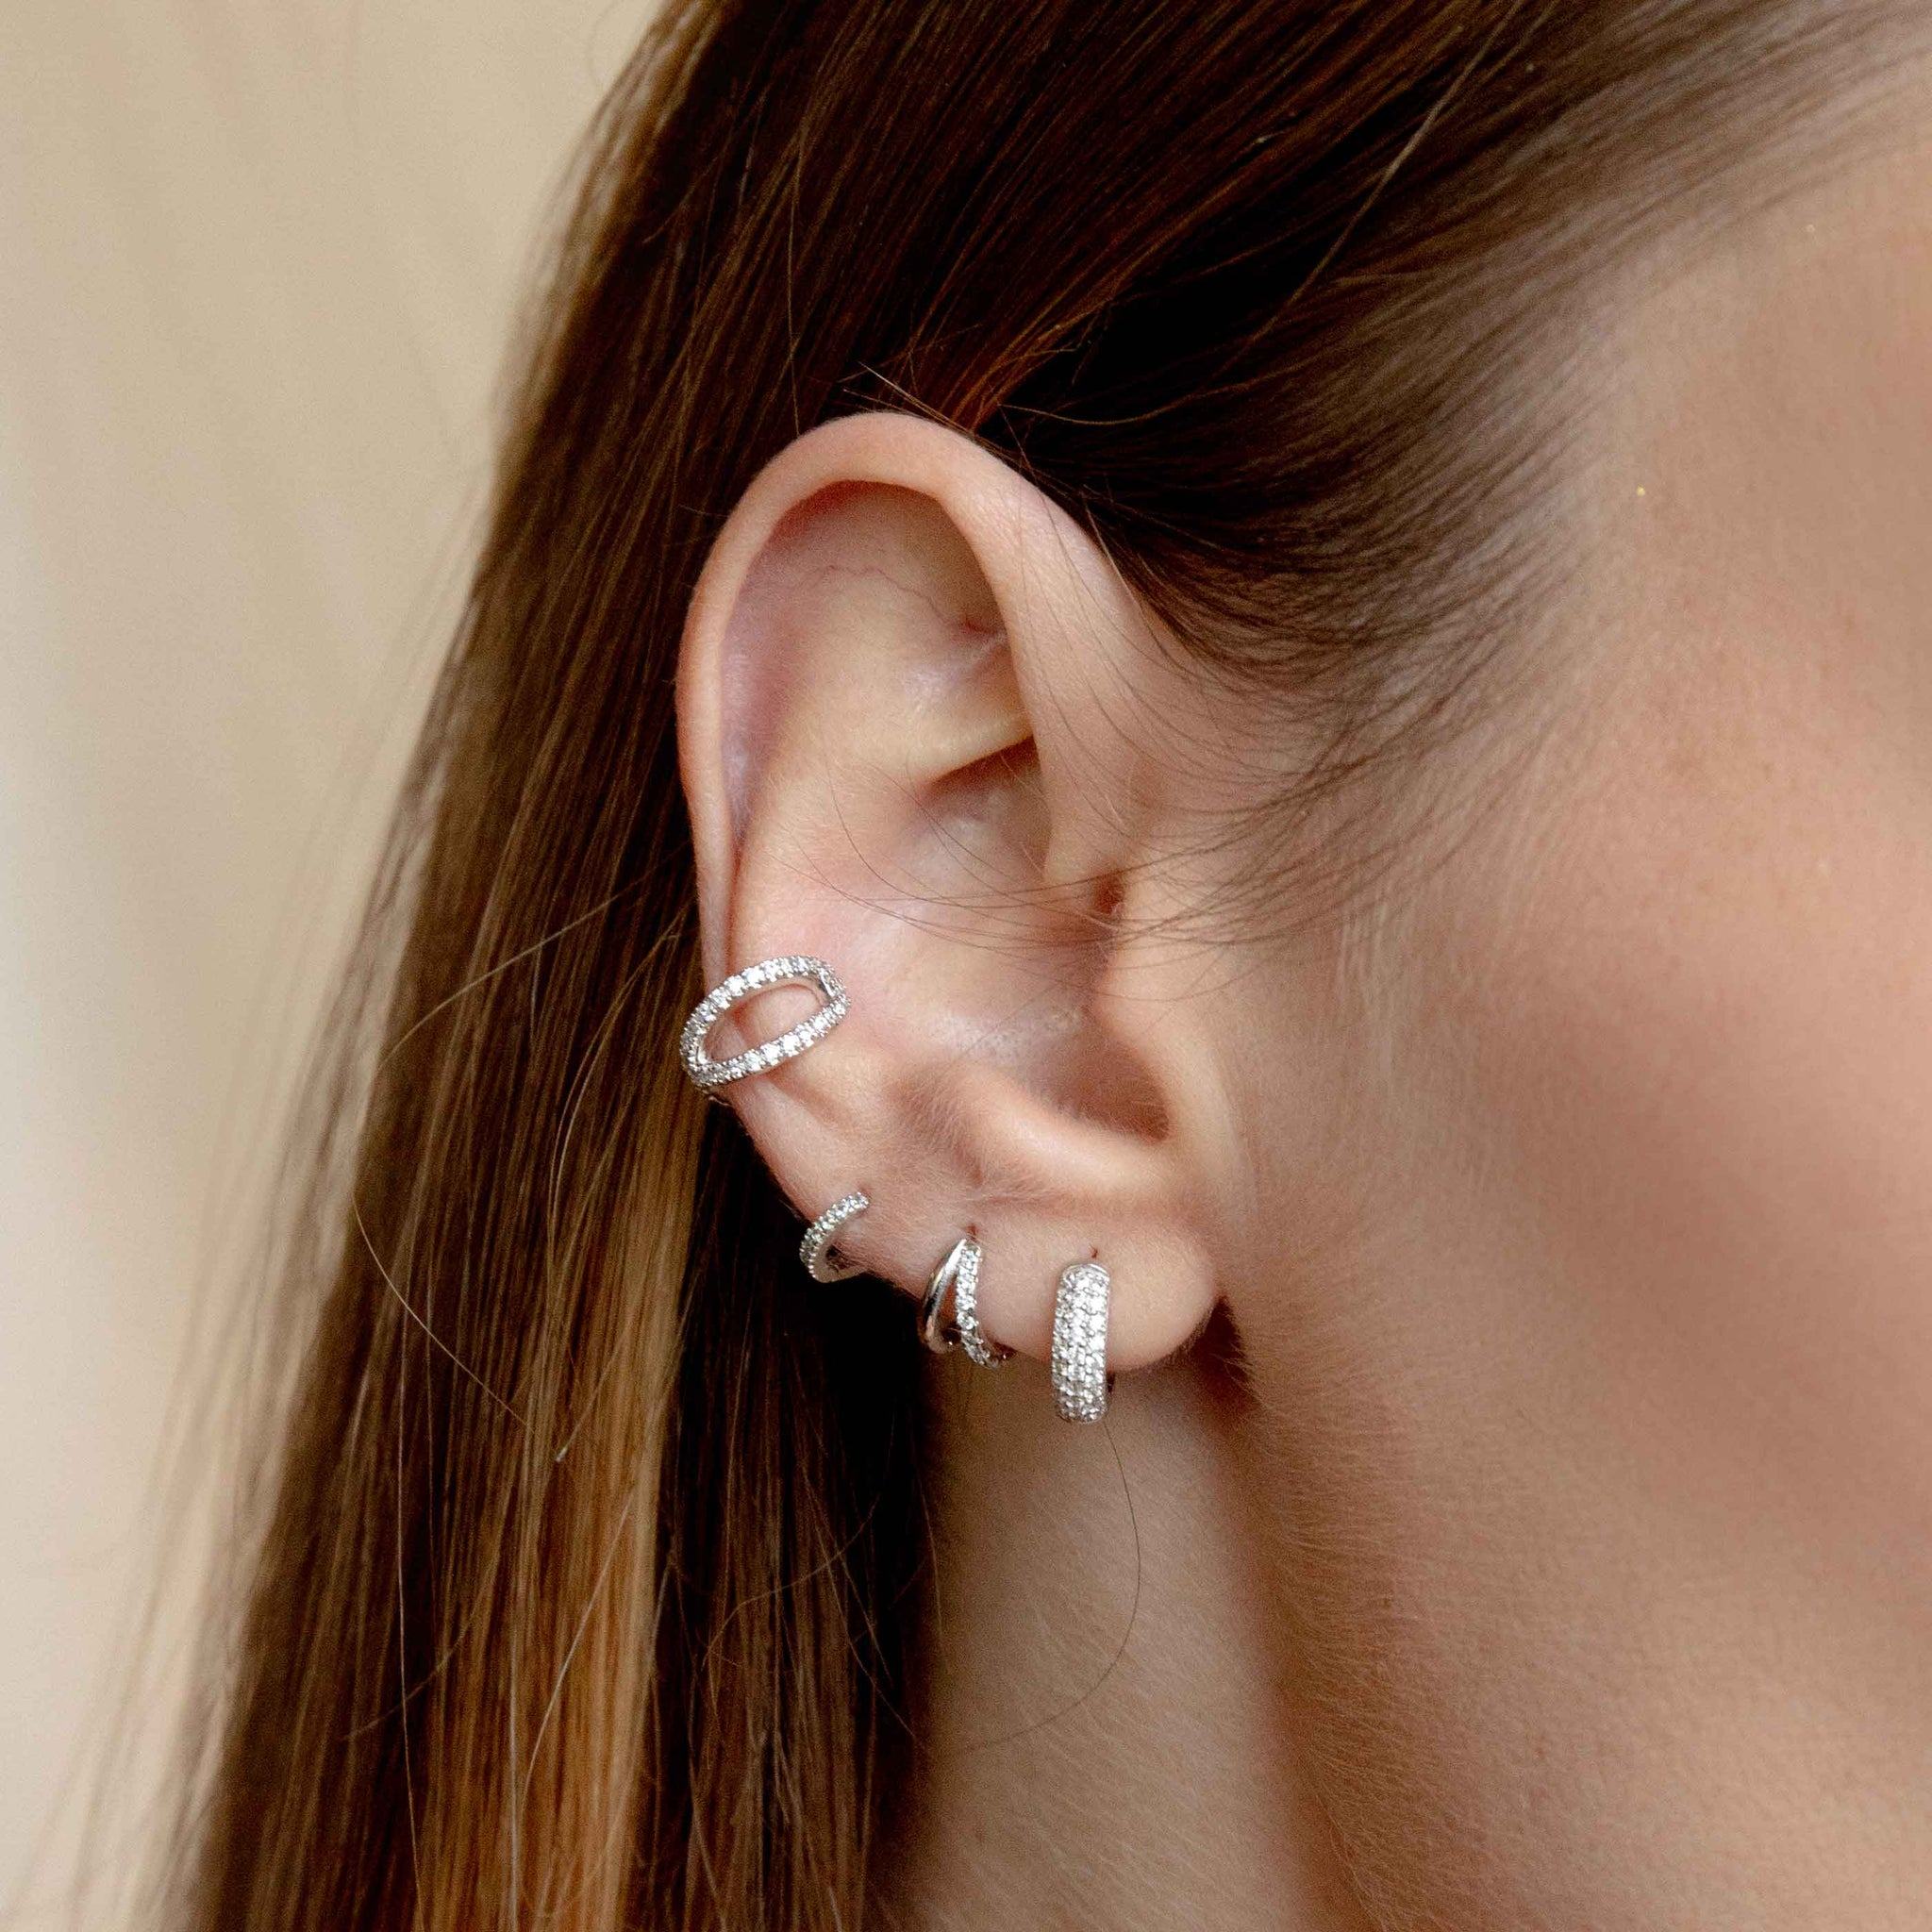 Crossover Crystal Ear Cuff in Silver worn with huggies and clickers